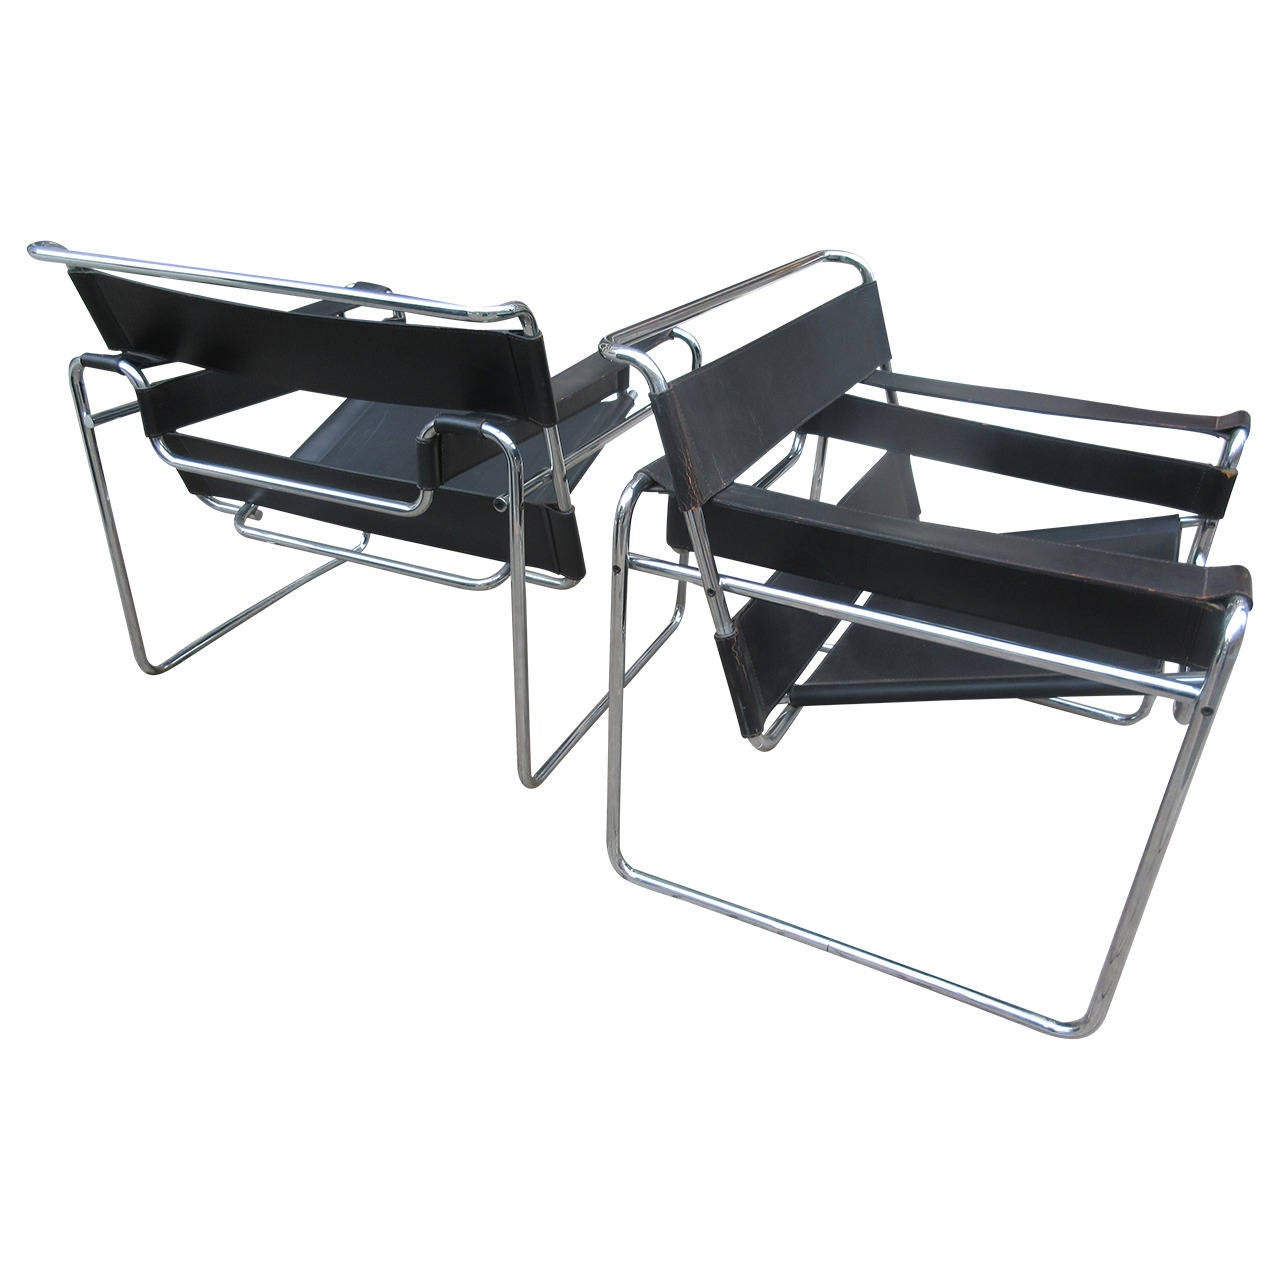 Breuer wassily chairs by knoll associates at 1stdibs for Knoll and associates